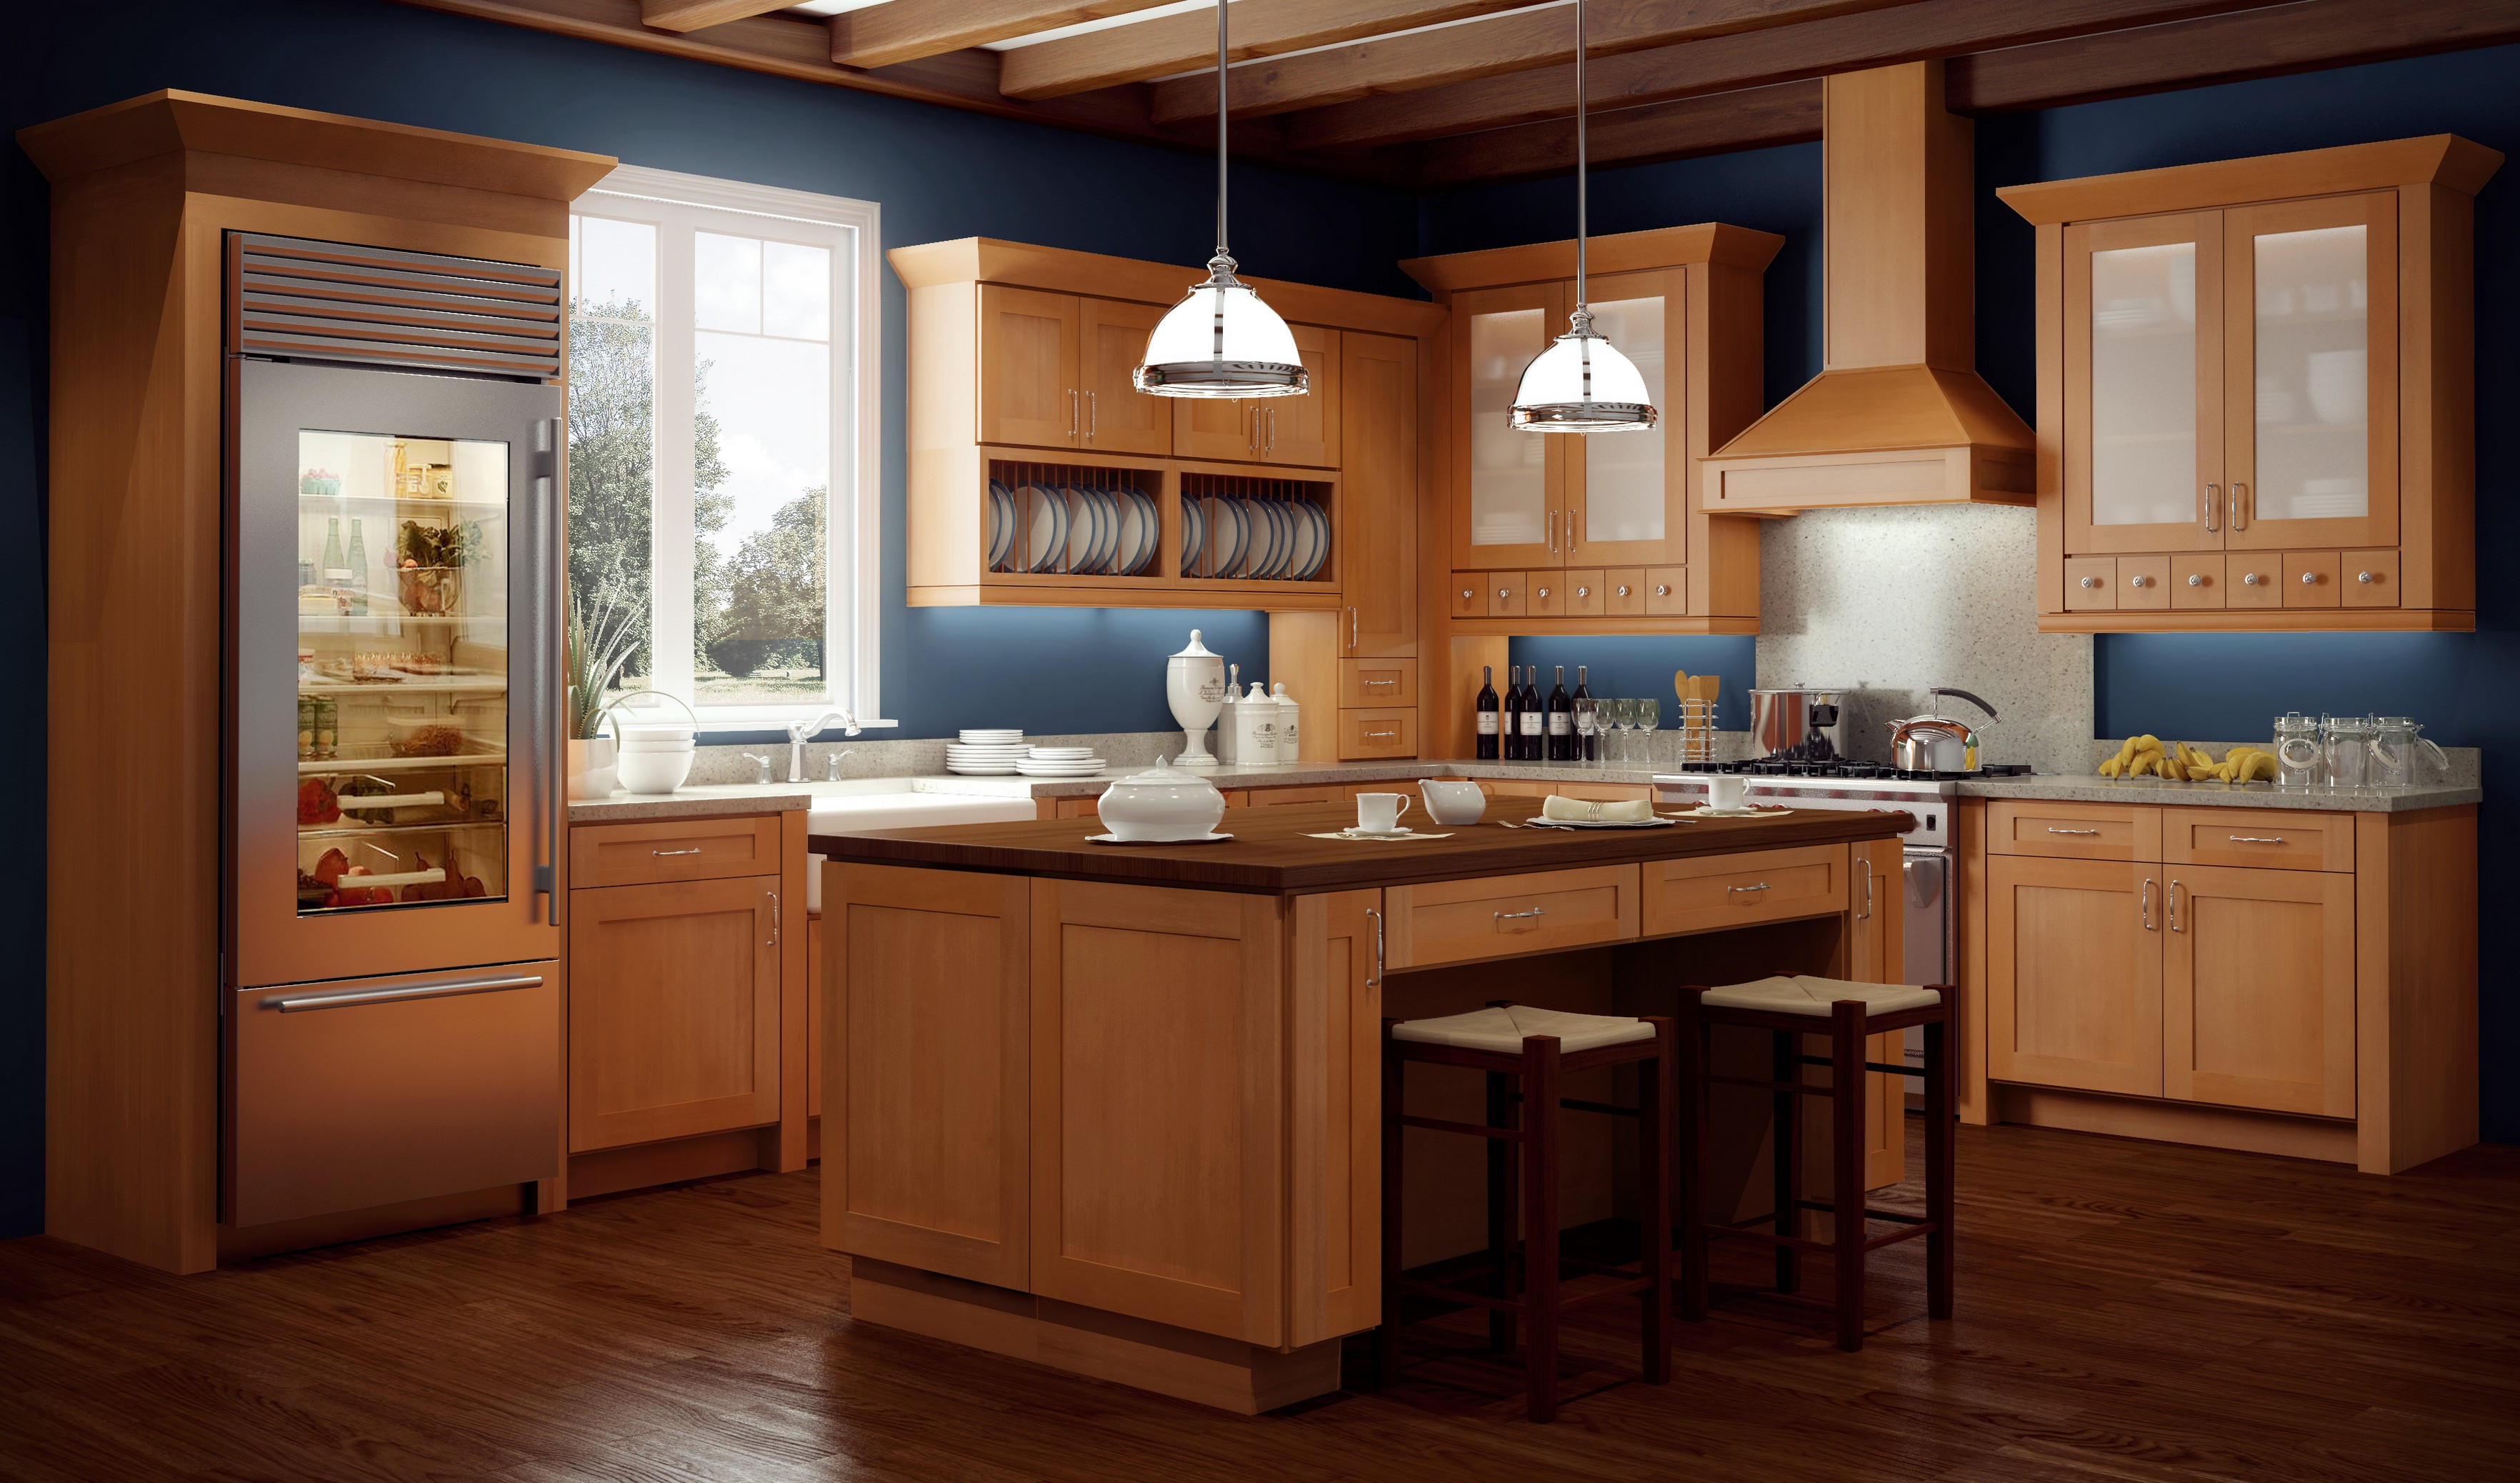 American style kitchen - Shaker Style Kitchen Featuring The Natural Wood Grain Of The Shakertown Door Style